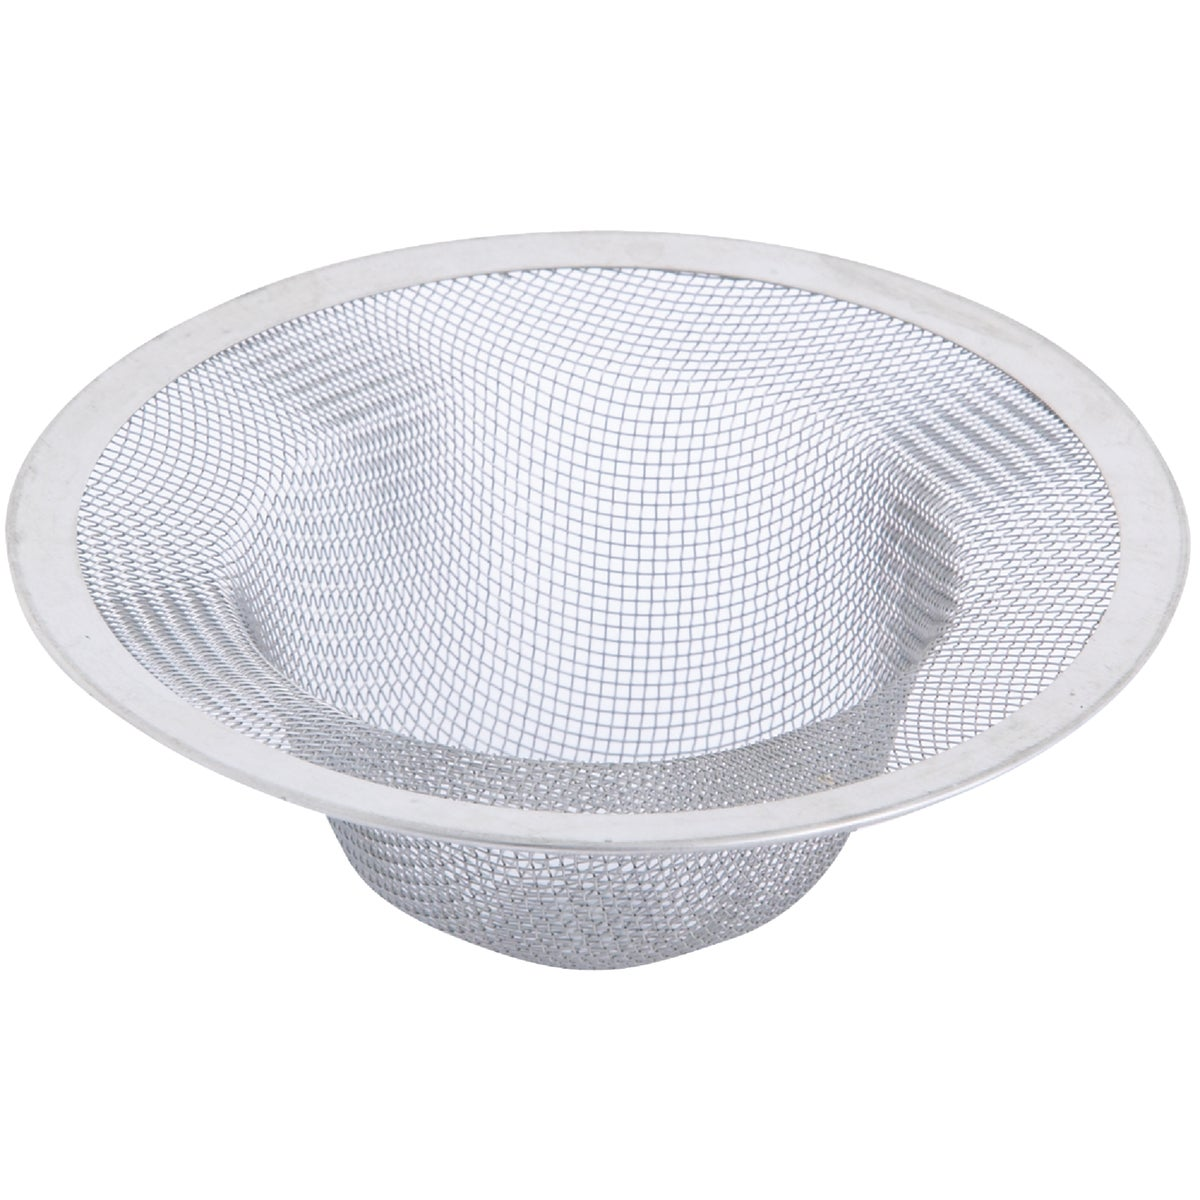 "4-1/2"" SS SINK STRAINER - 88822 by Danco Perfect Match"